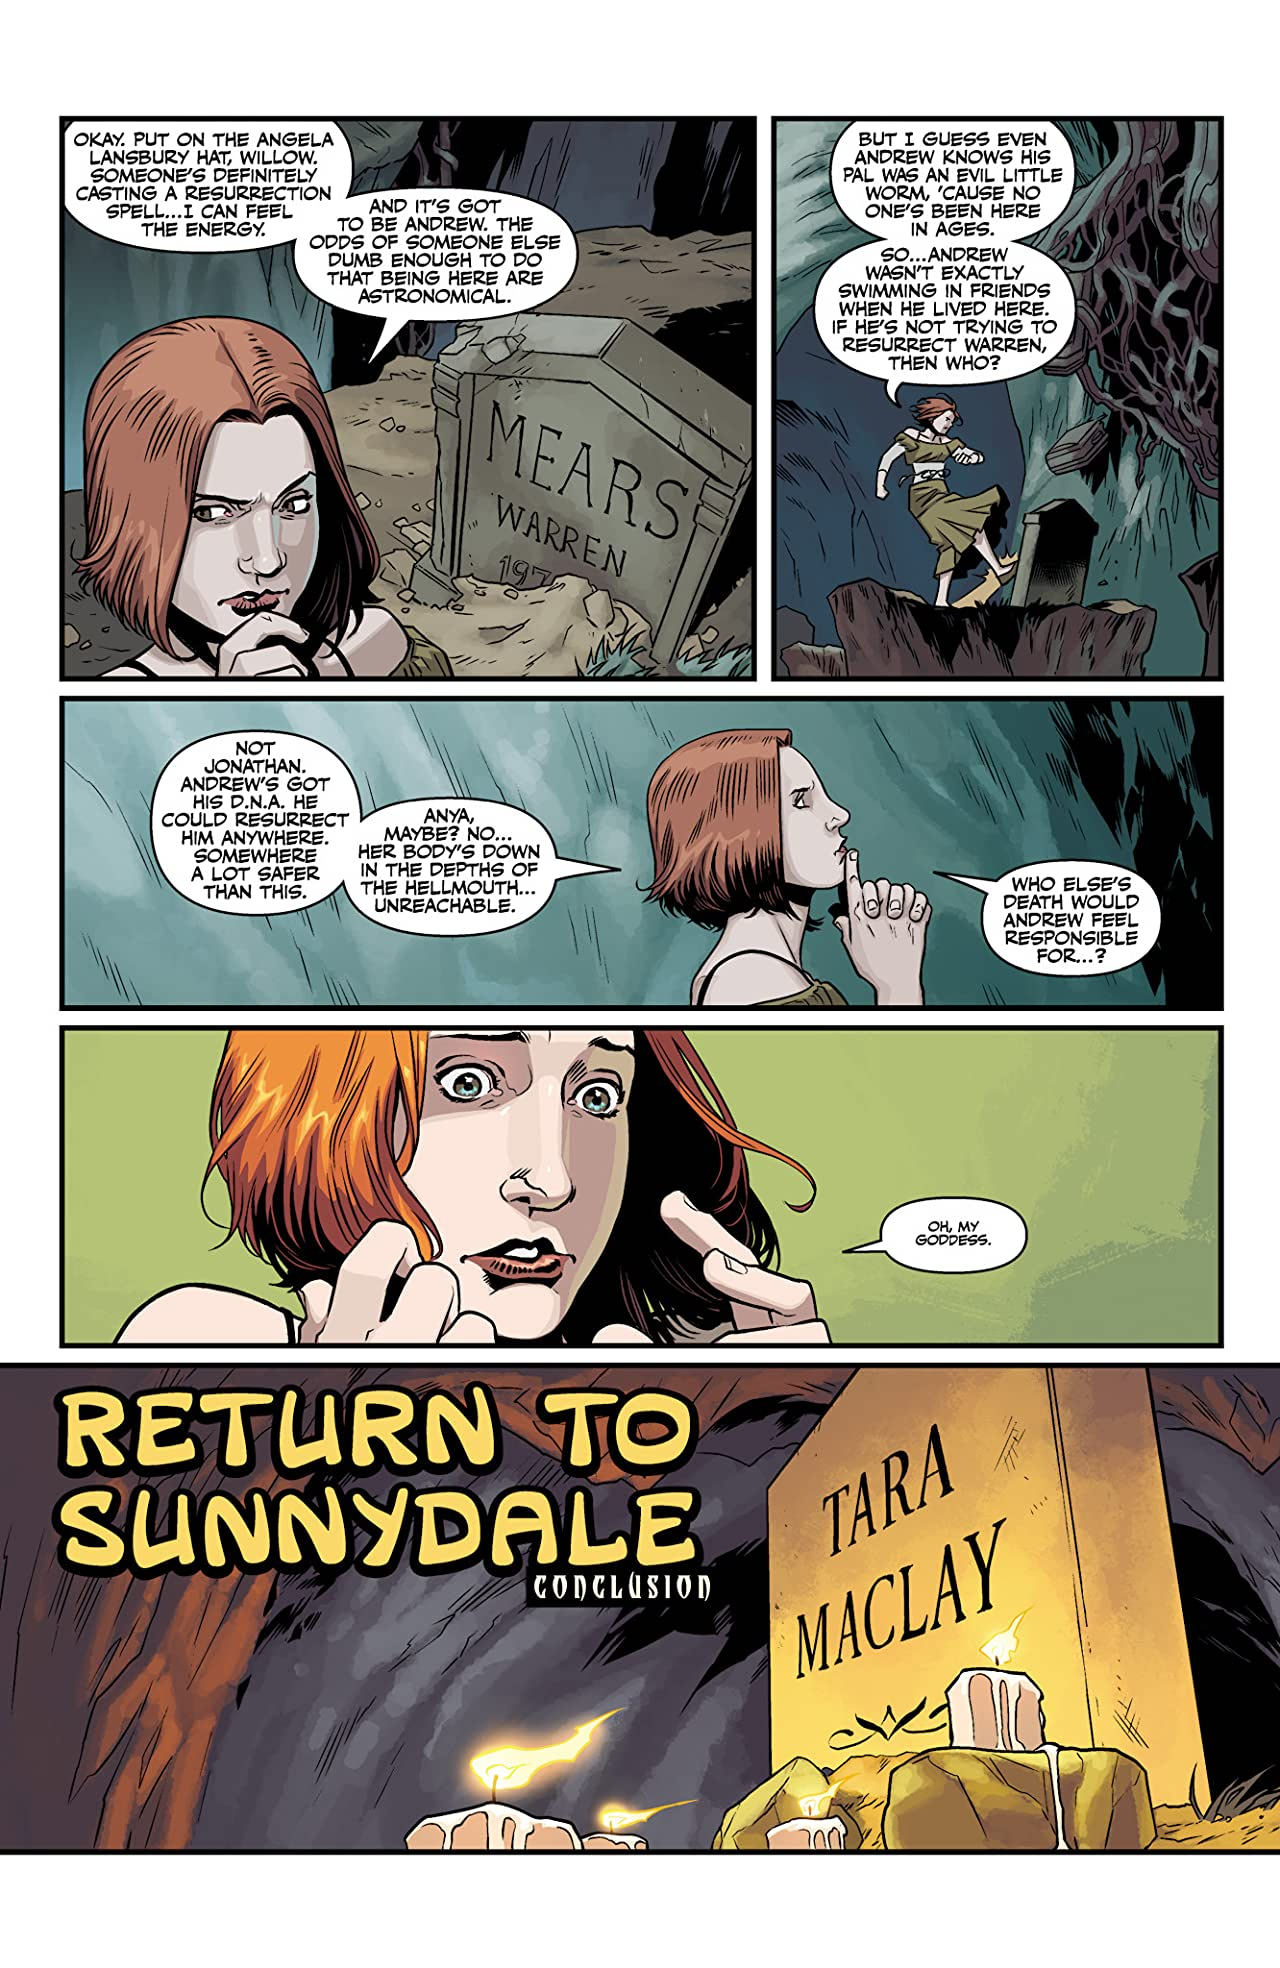 Buffy the Vampire Slayer: Season 10 #9